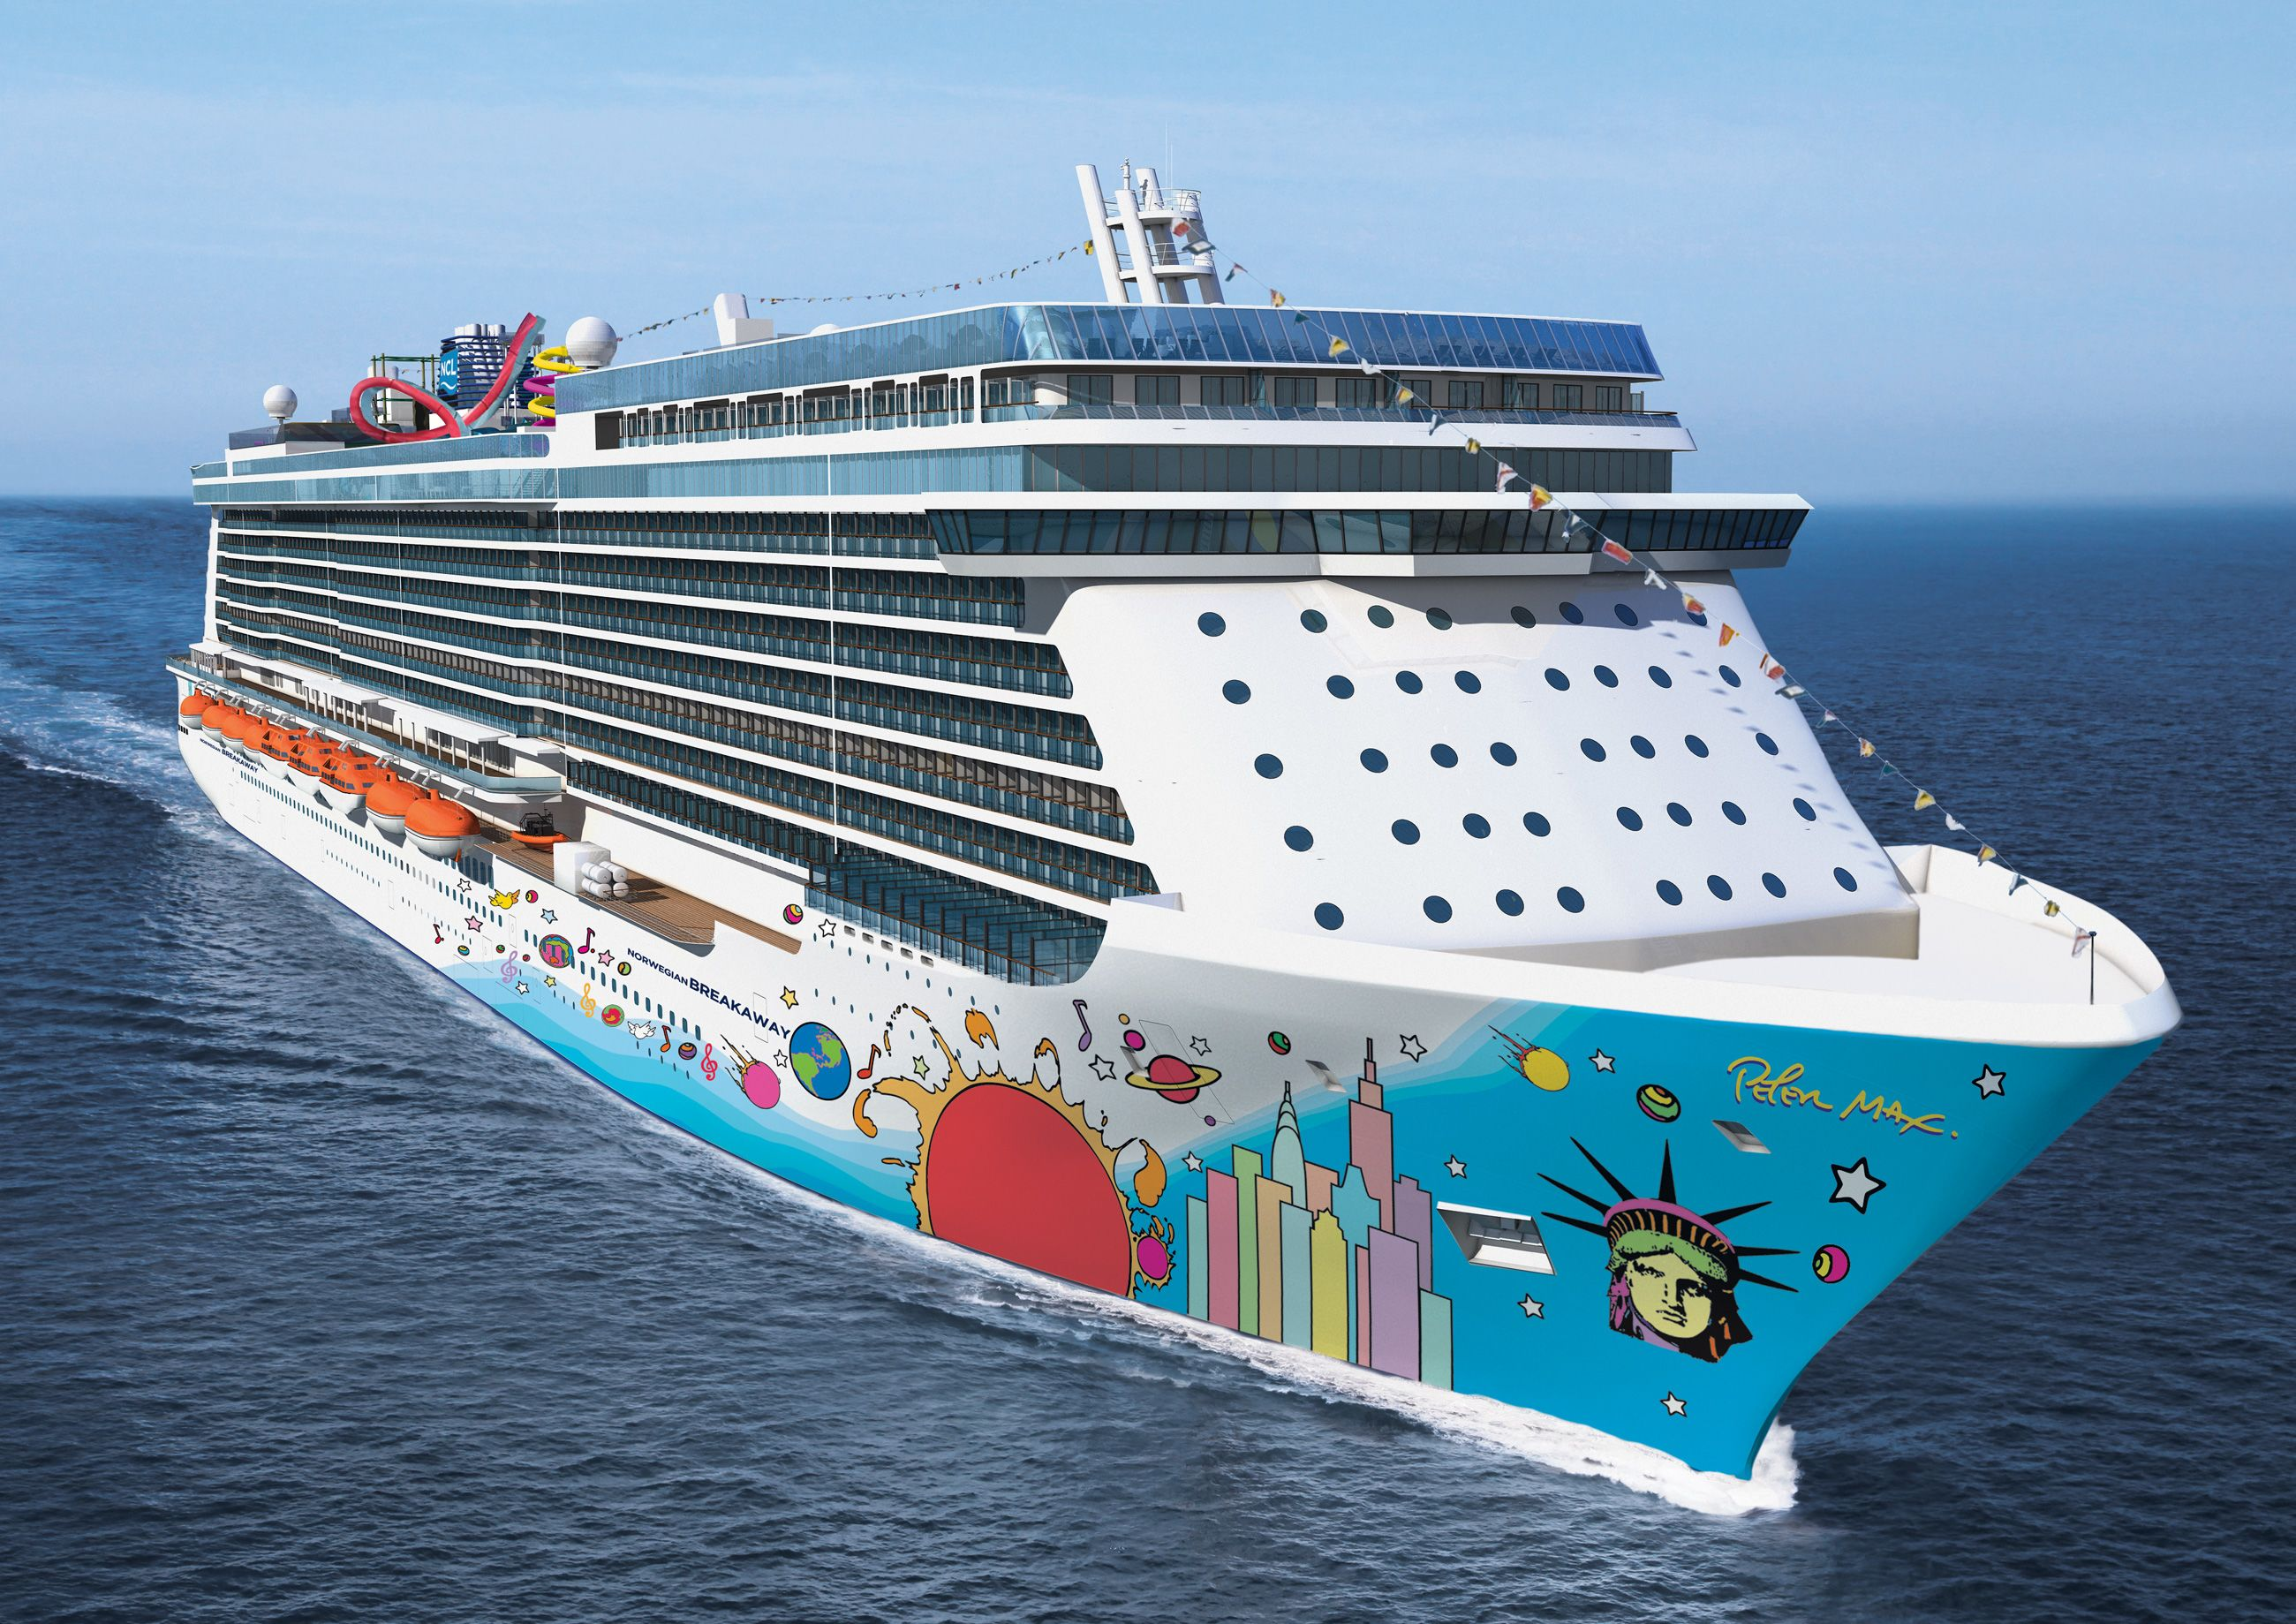 Norwegian Cruise Lines Breakaway